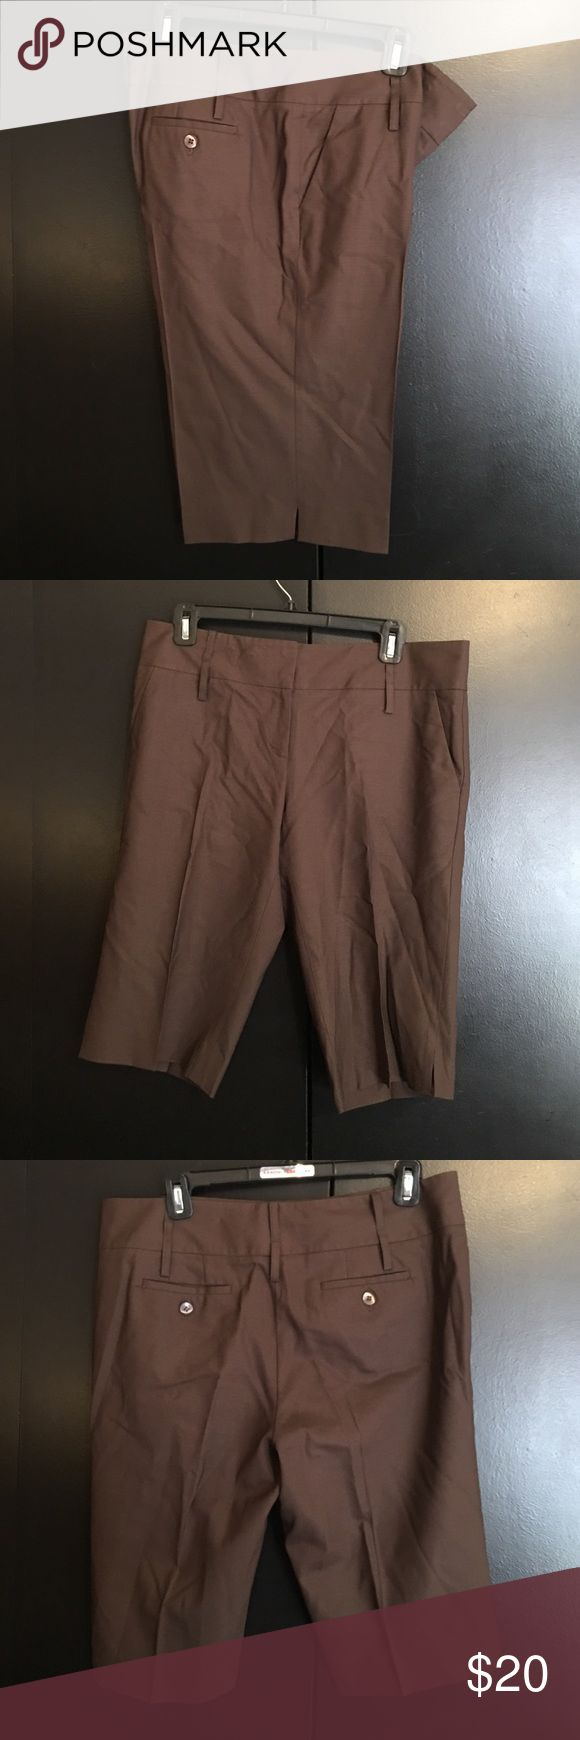 Brown trouser shorts by Laundry Brown trouser/slacks  shorts by Laundry shelli seal. In perfect condition Laundry by Shelli Segal Shorts Bermudas